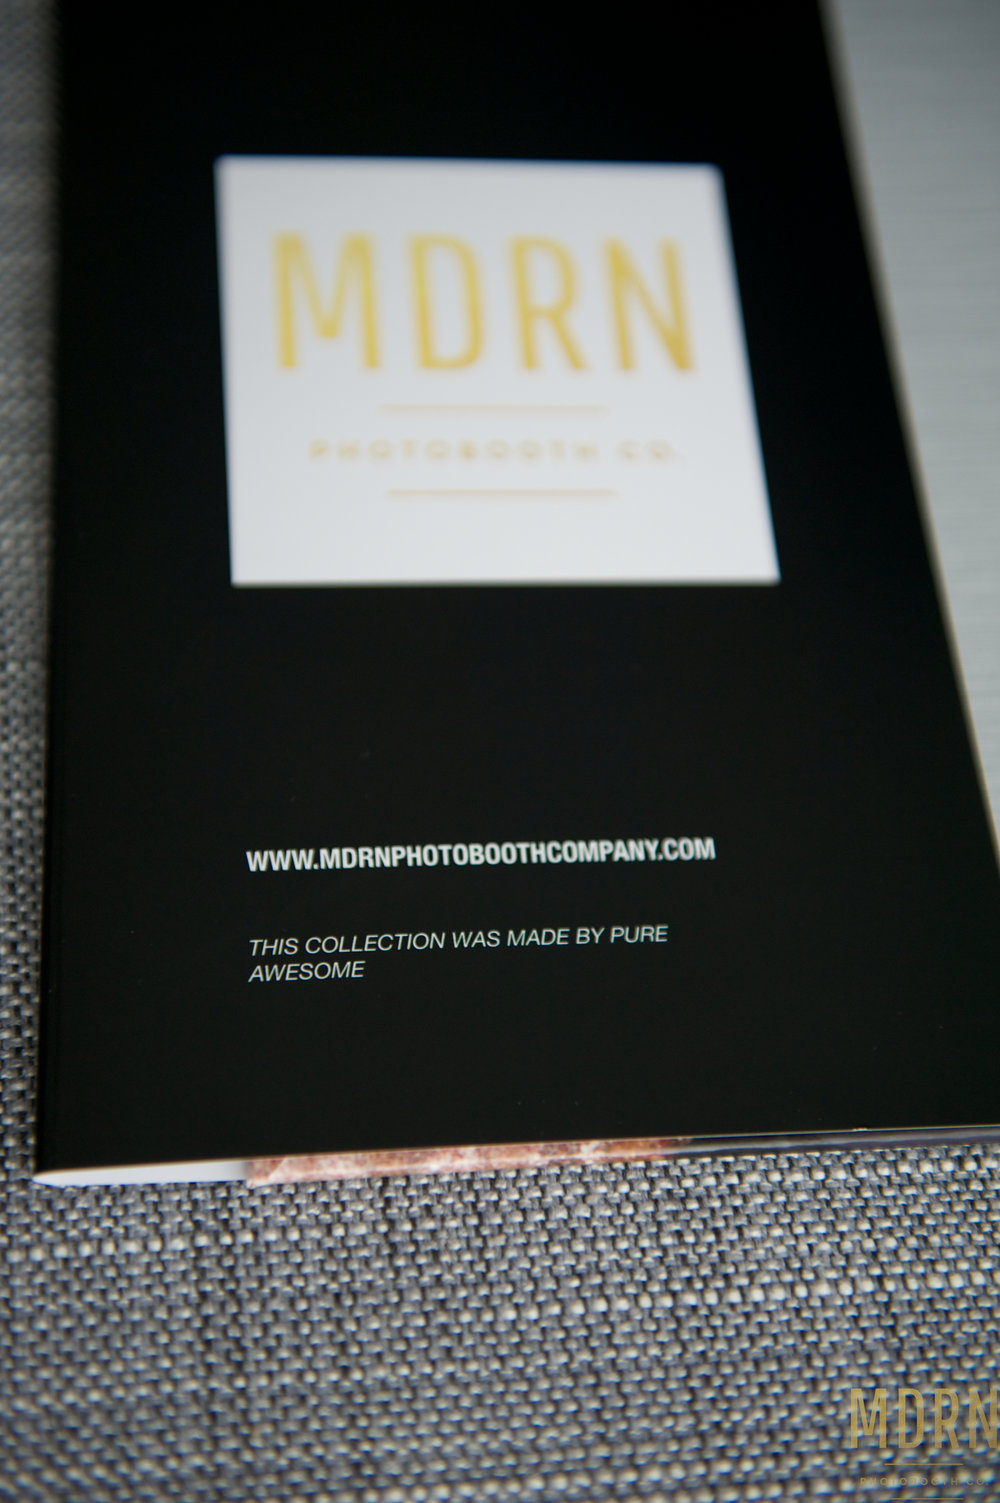 MDRN Photobooth Company